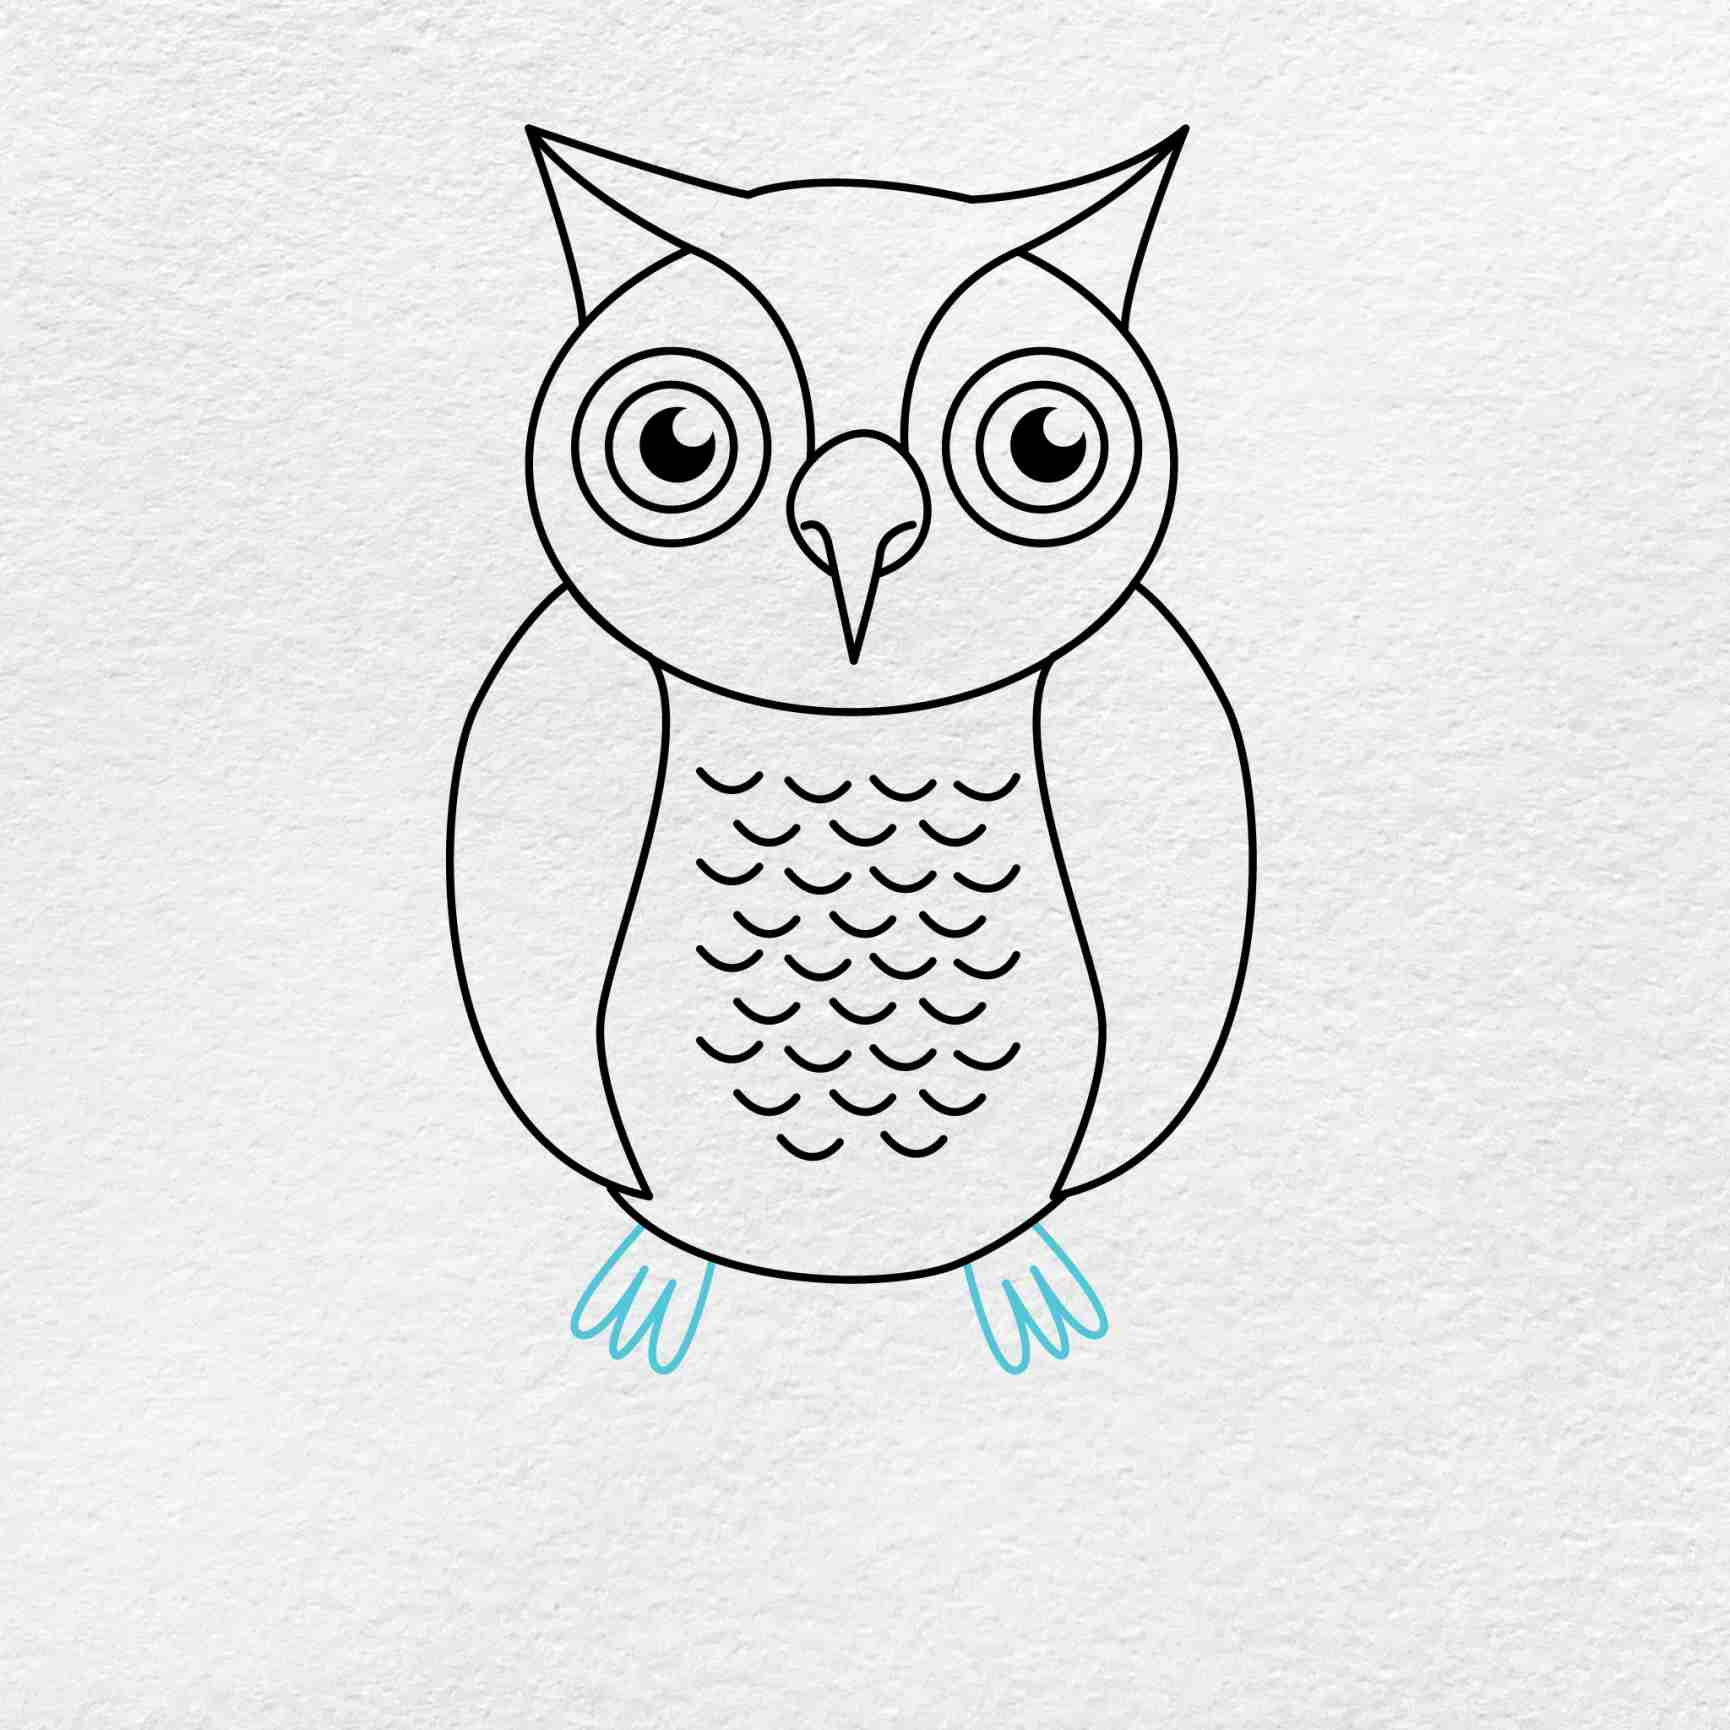 How To Draw An Owl: Step 7